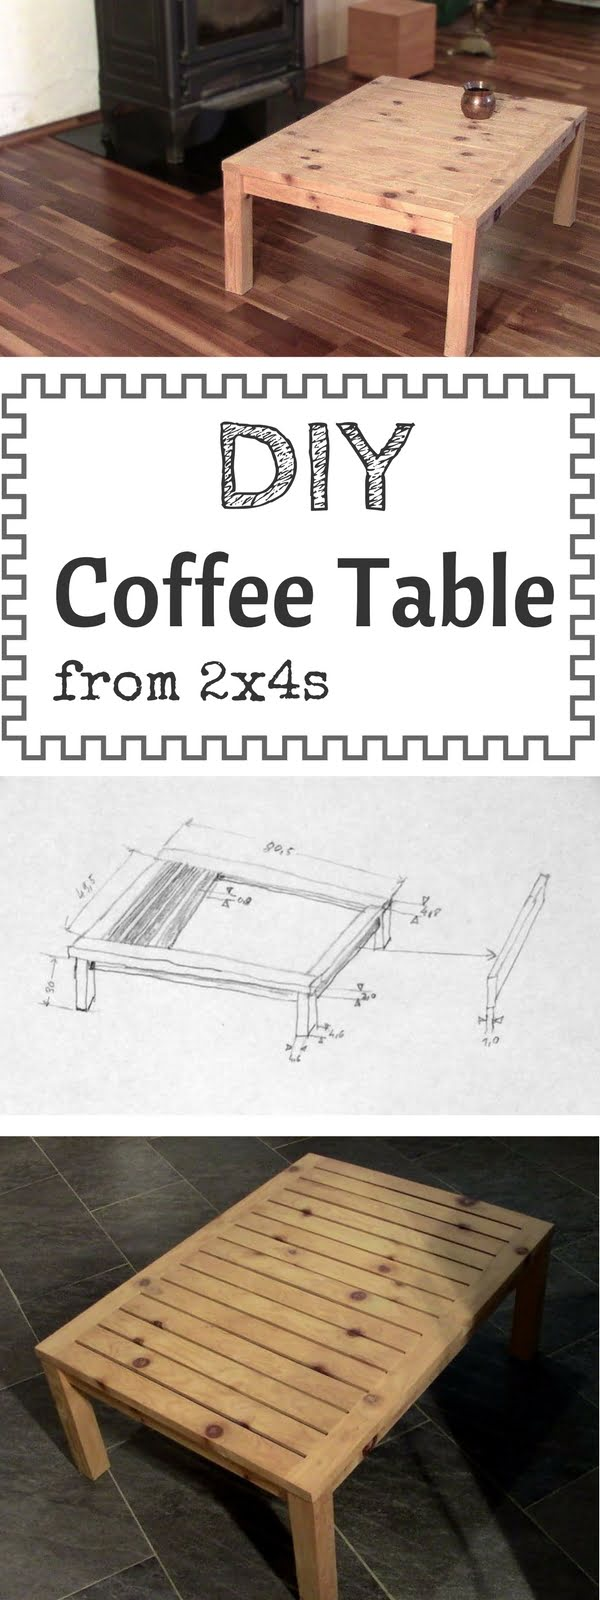 Check out how to make a DIY wooden coffee table from 2x4s